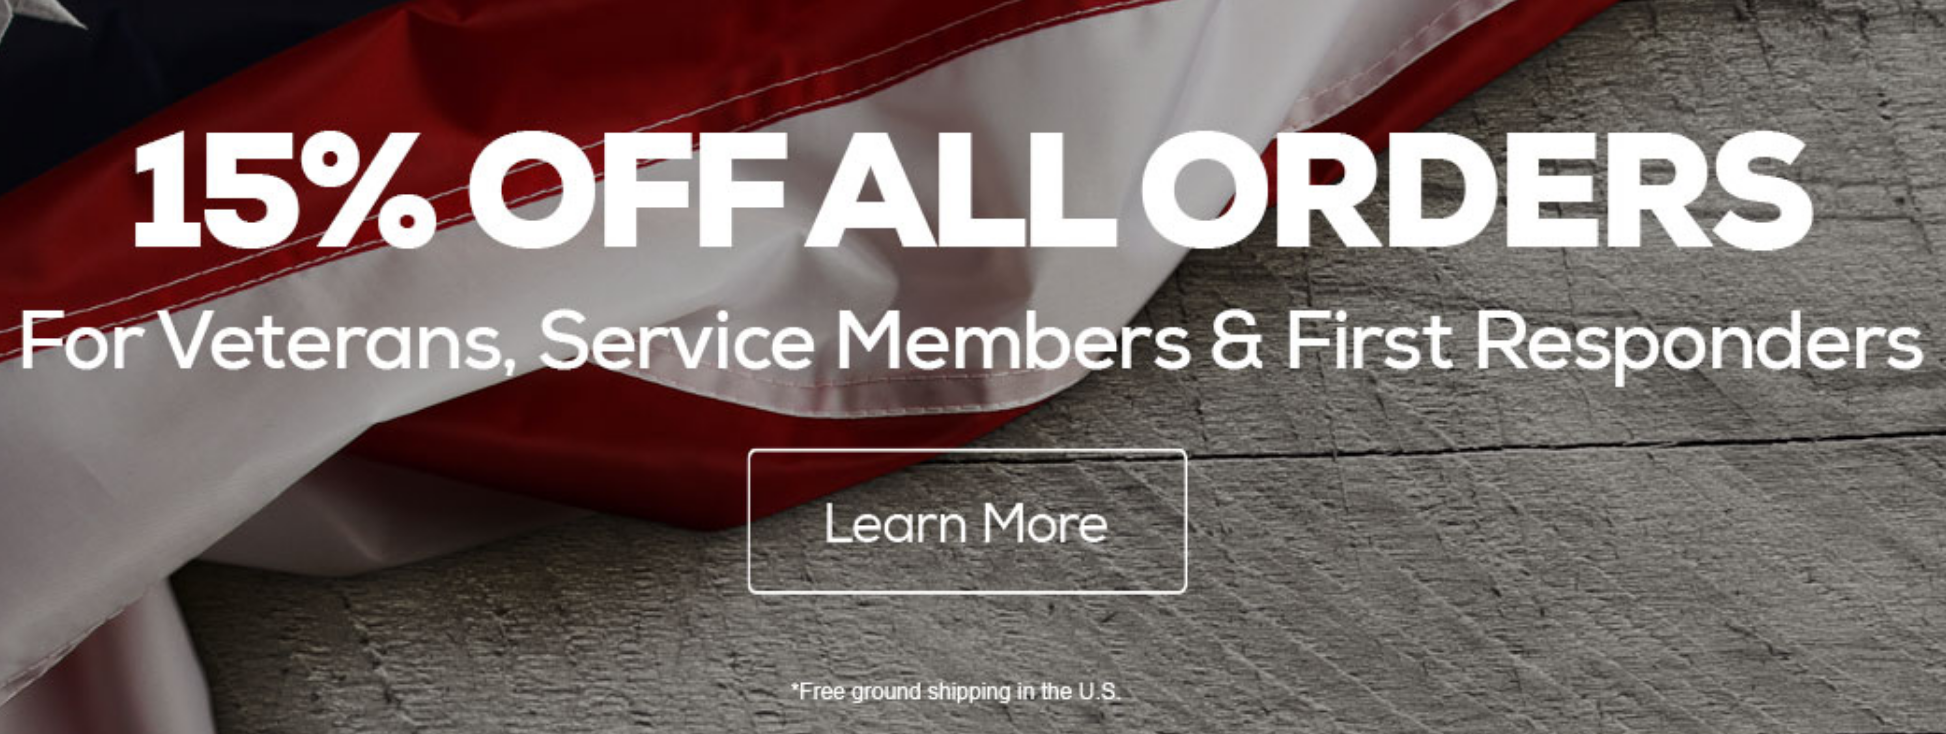 Fanatics Military Veteran Discounts